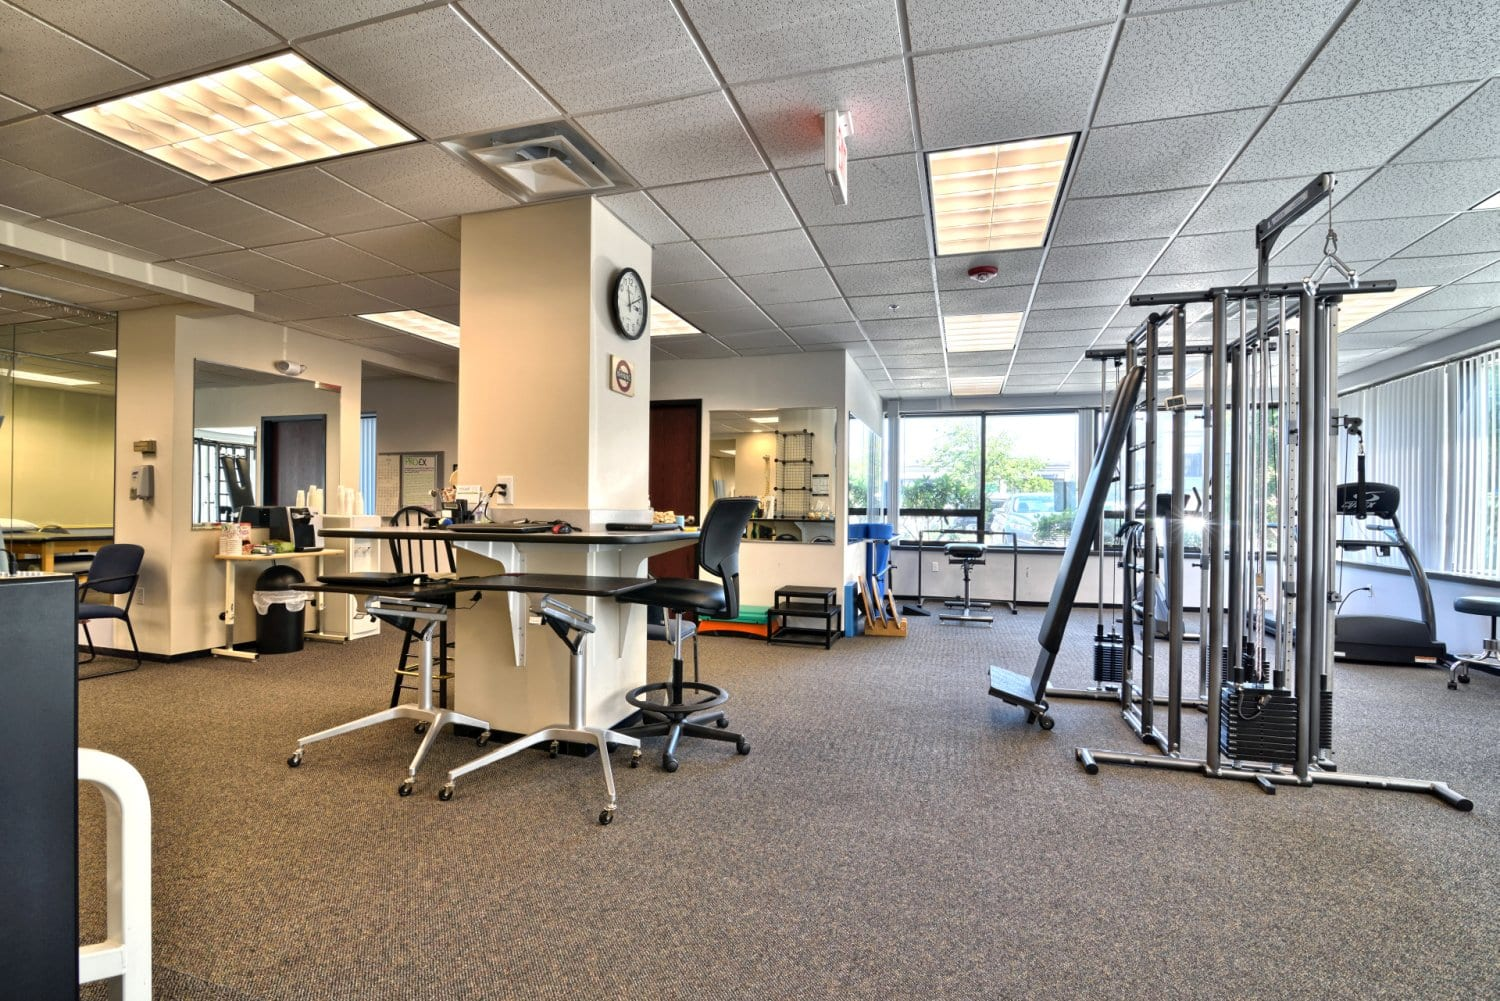 An image of the clean interior of our physical therapy clinic in Beverly, Massachusetts.